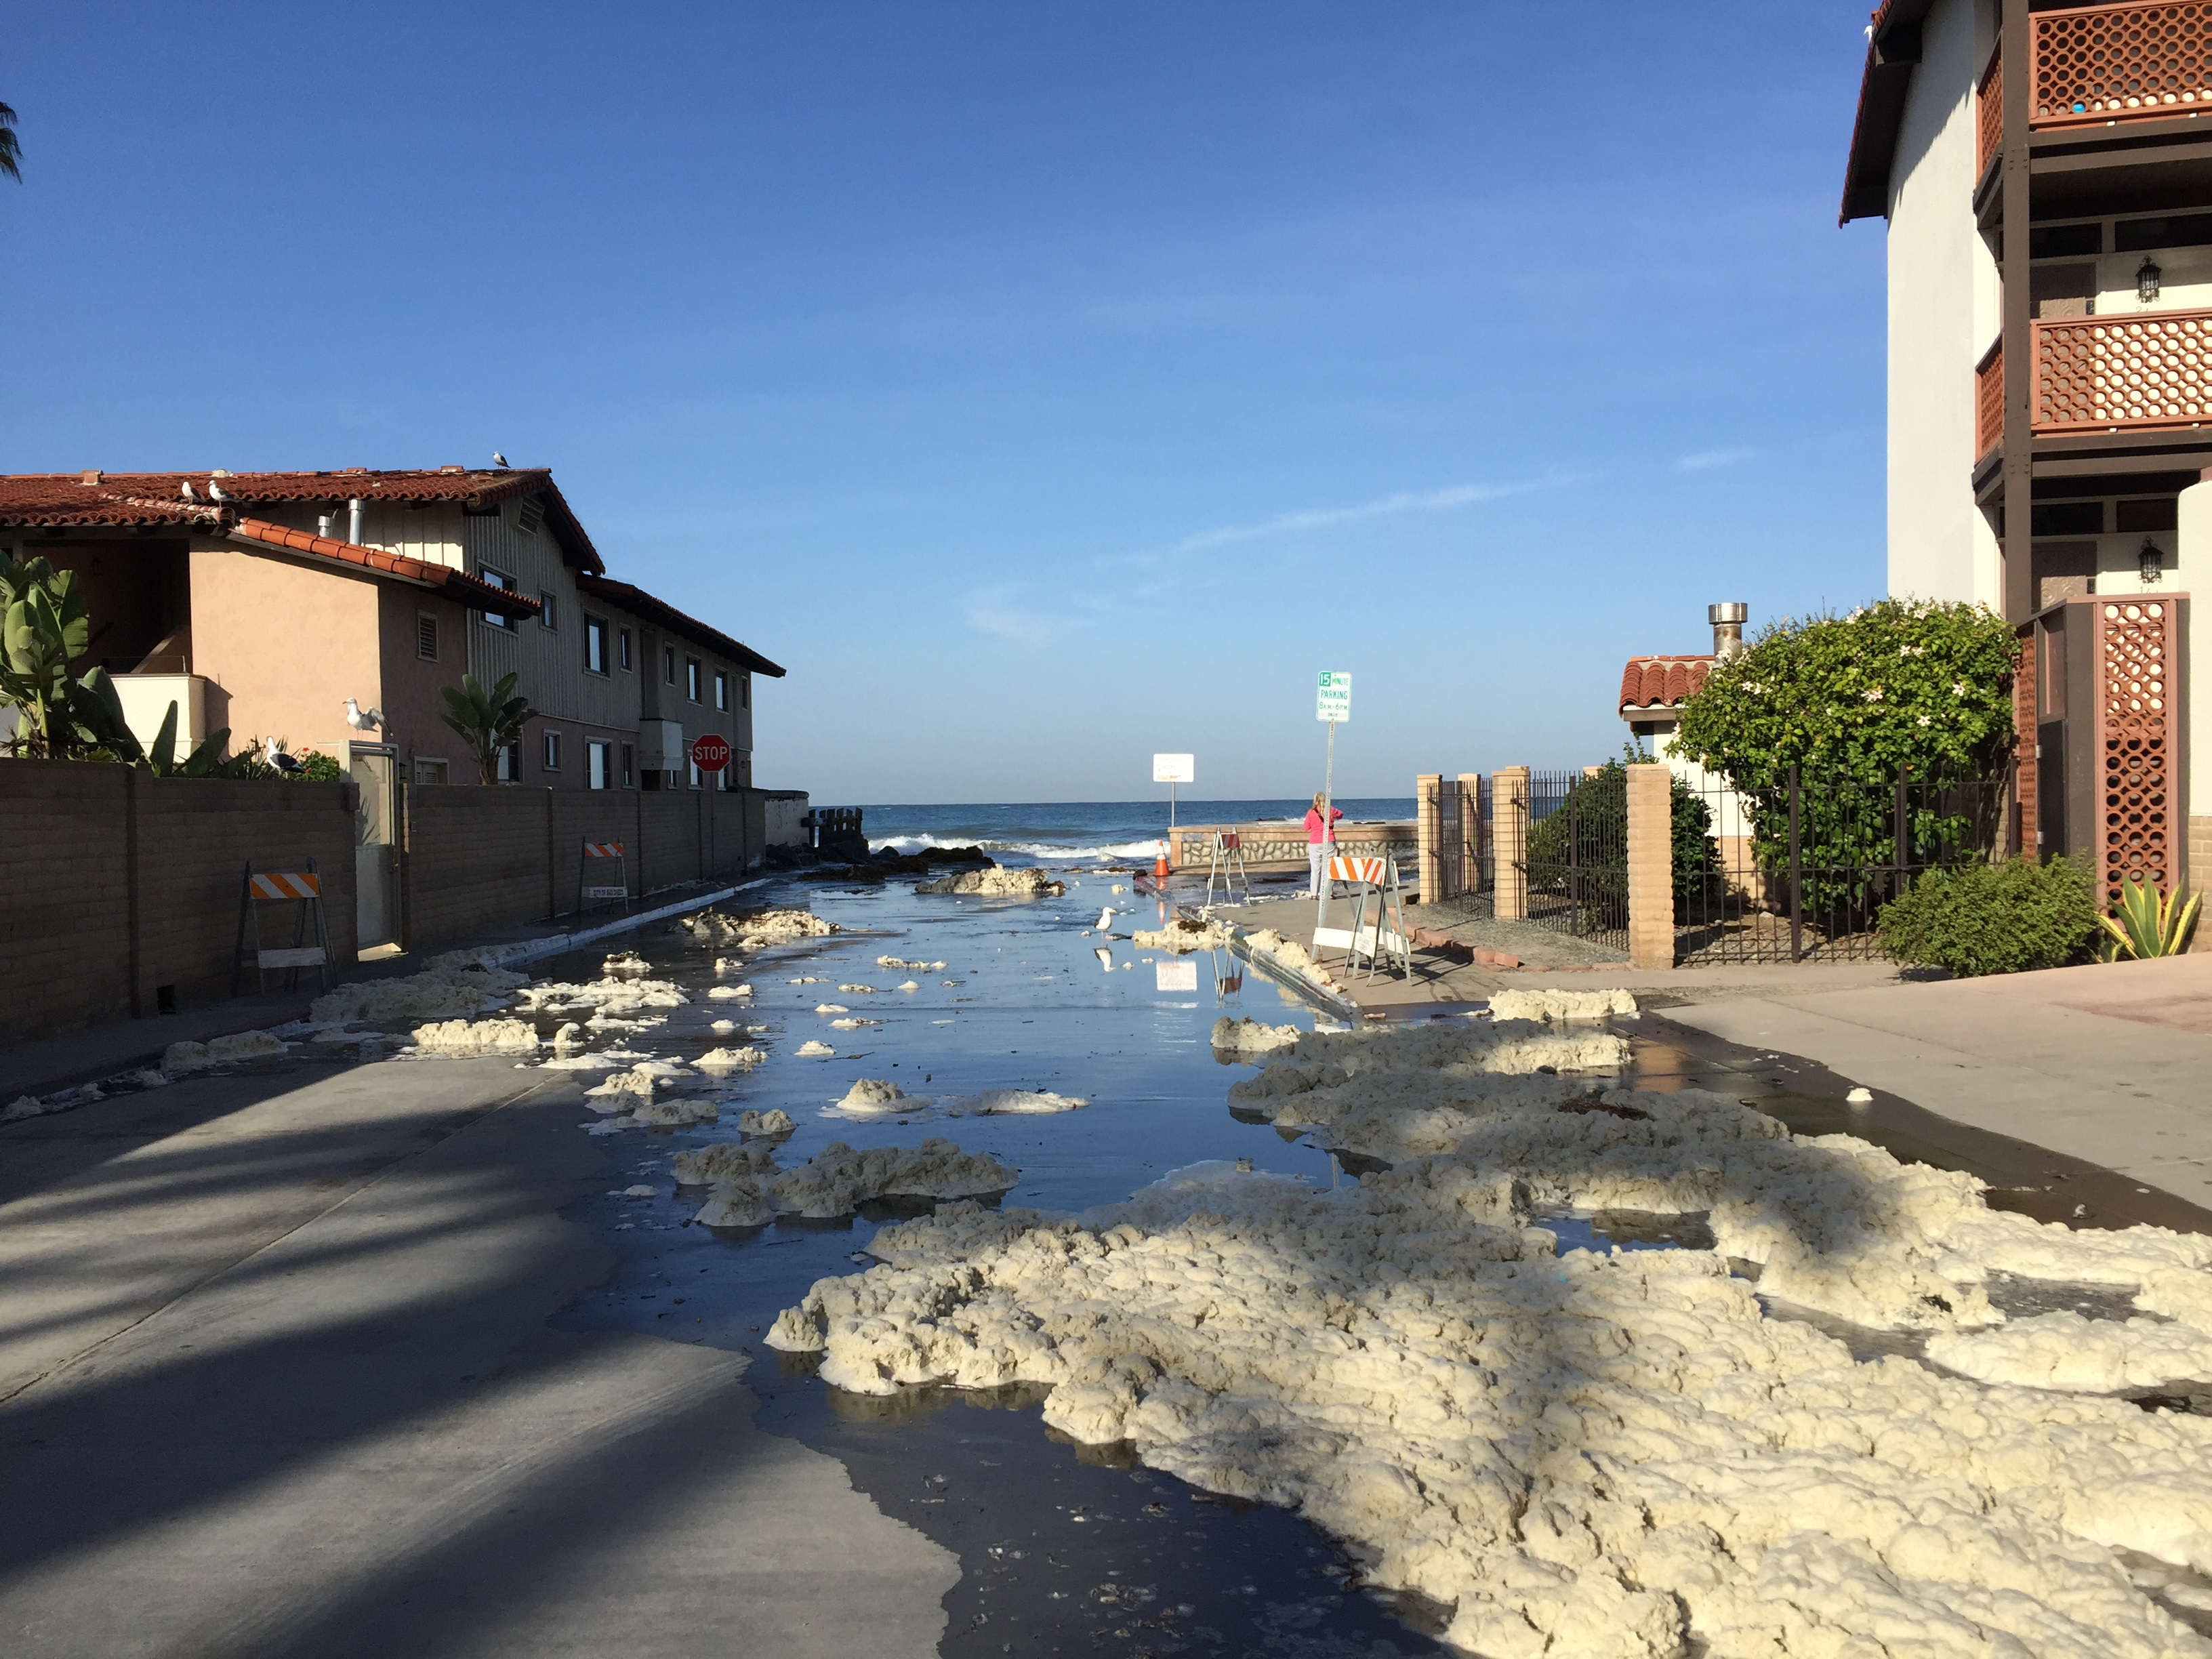 flooded street in La Jolla